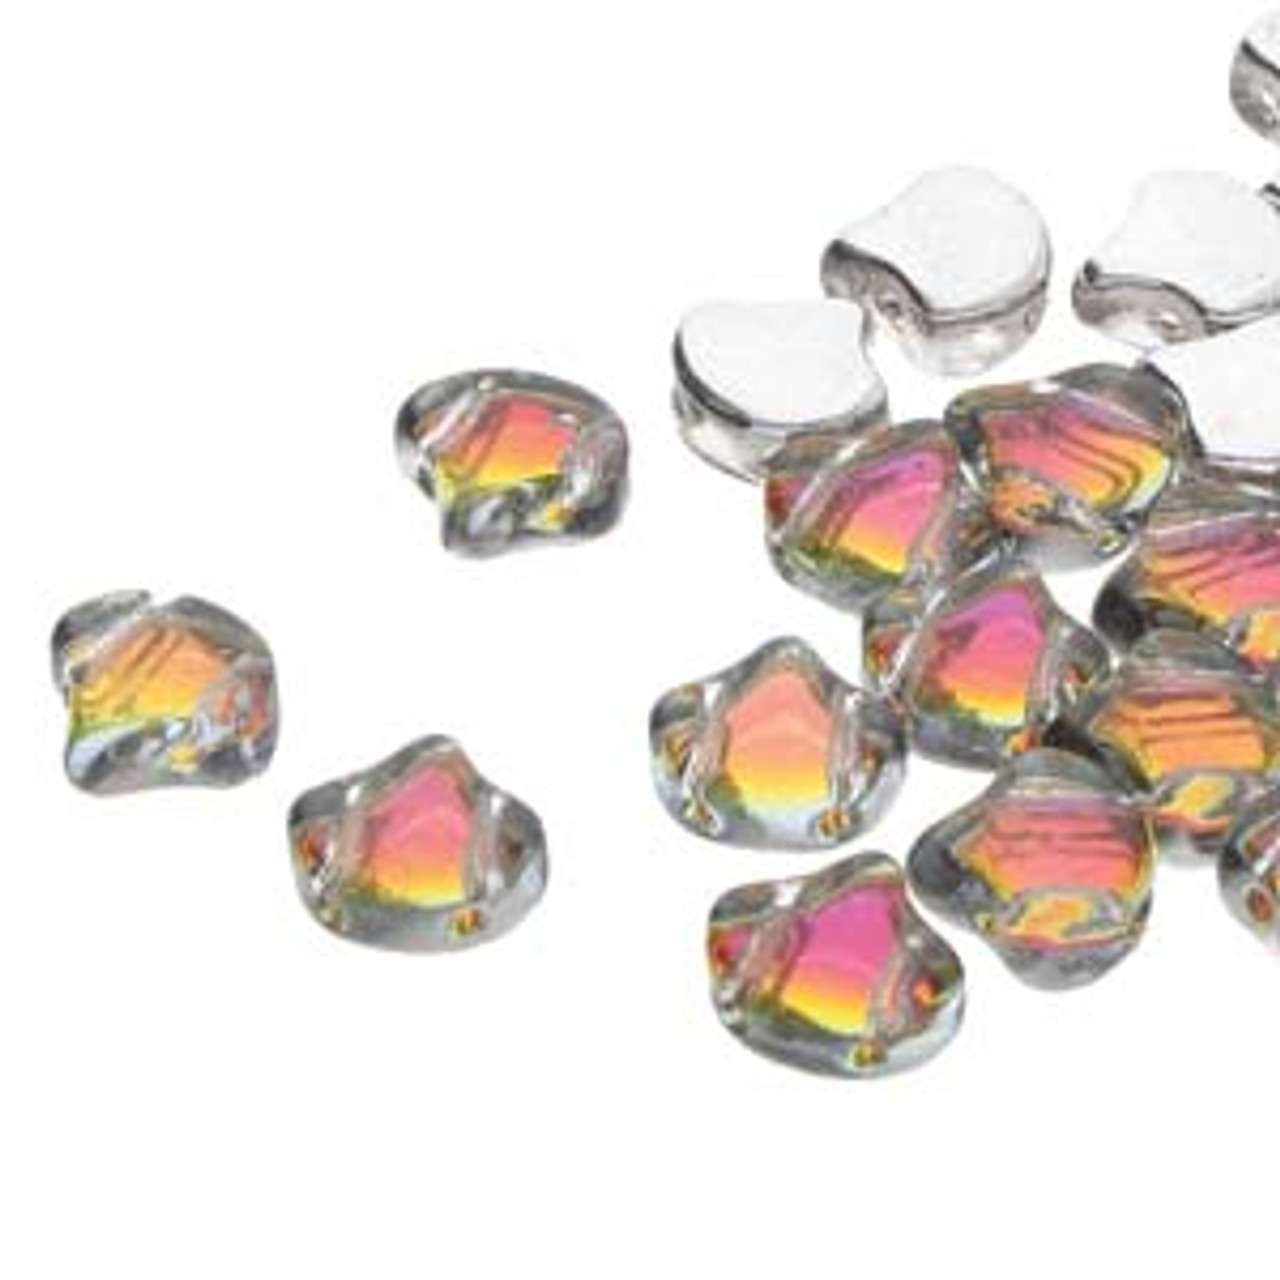 7.5x7.5mm Backlit Tequilla Ginko Beads (8 Grams) 30-35 Beads